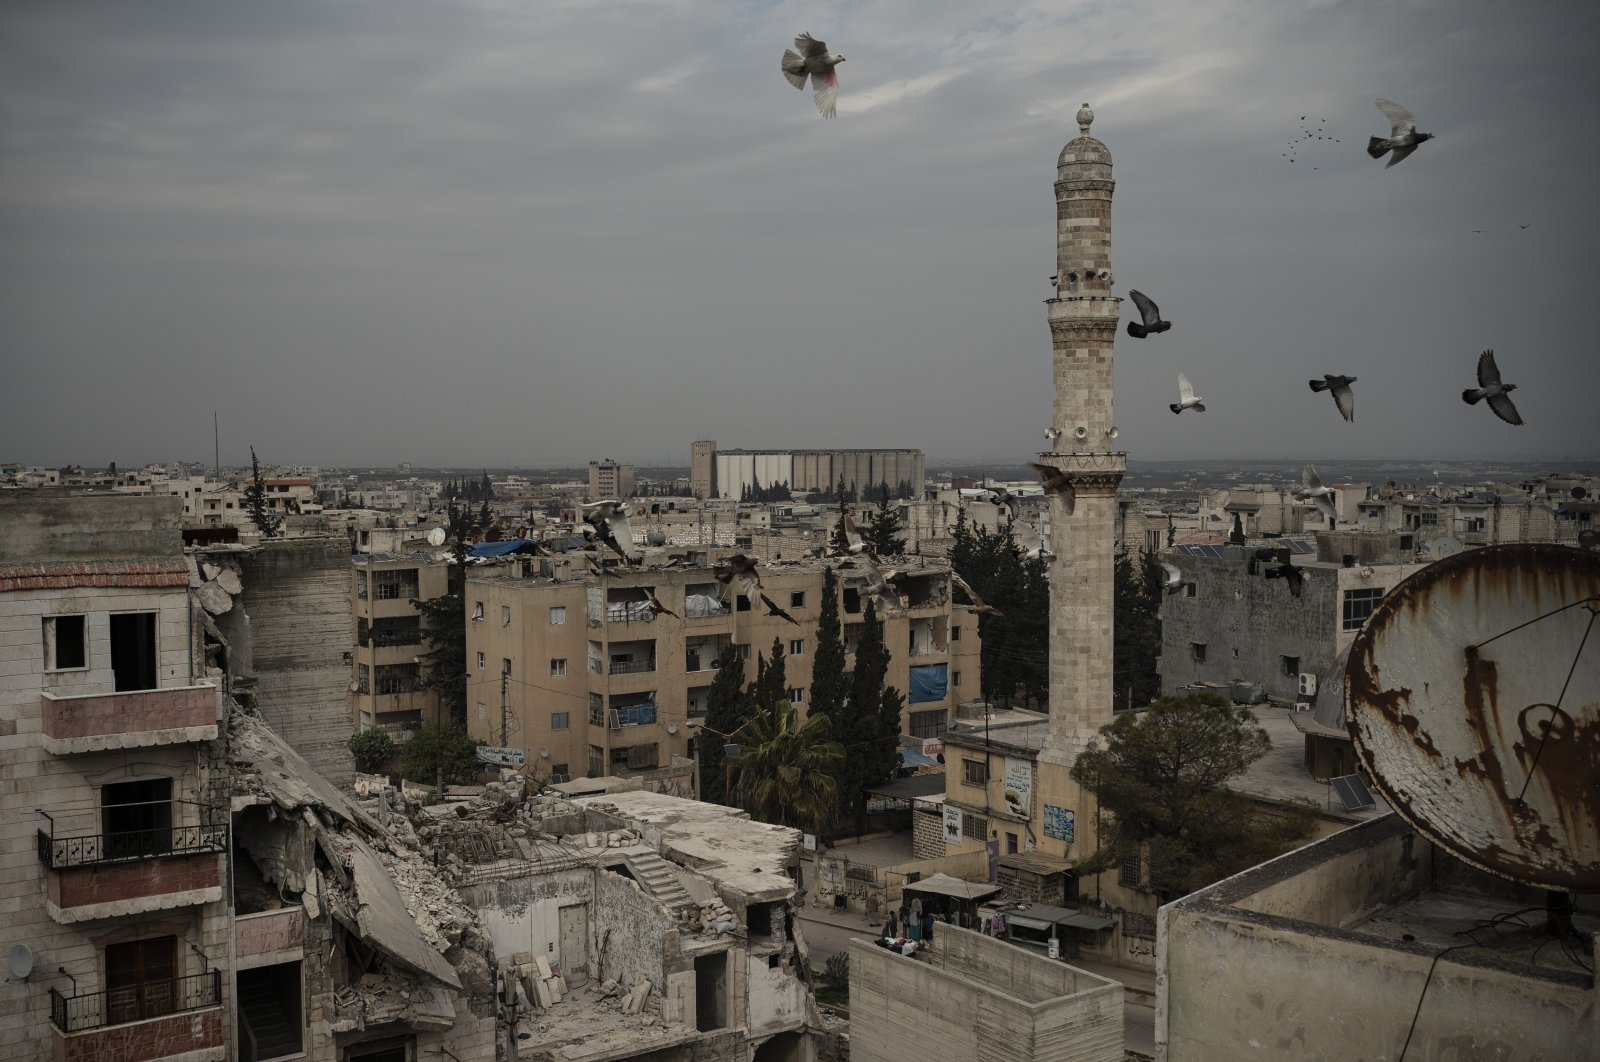 A mosque stands next to a damaged building, in Idlib, Syria, March 12, 2020.